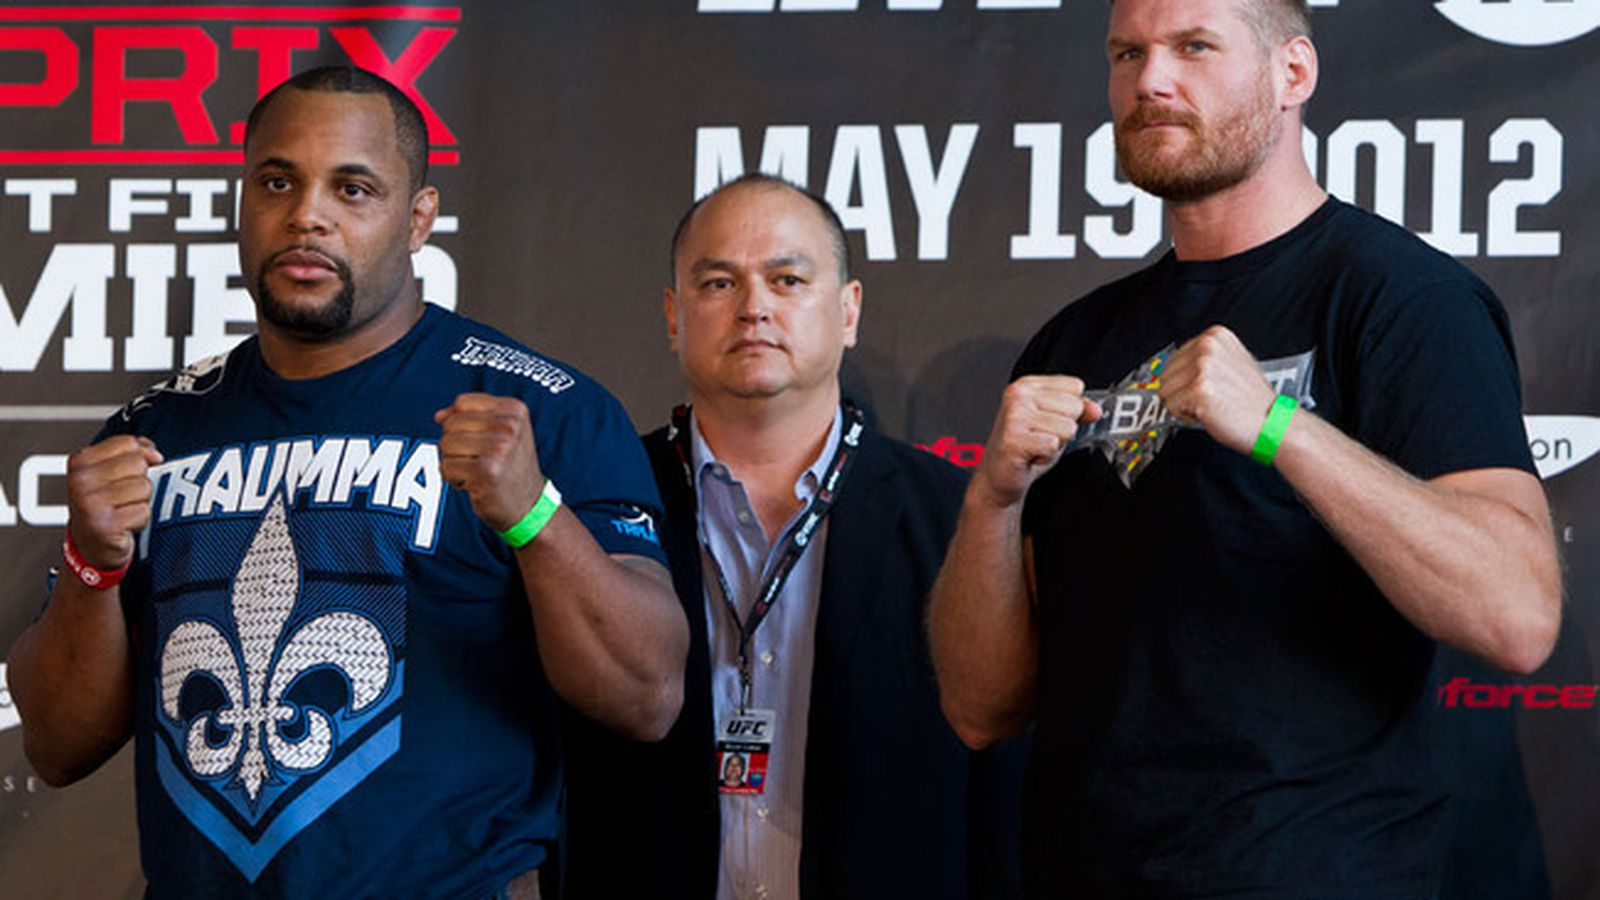 Strikeforce: Josh Barnett vs Daniel Cormier predictions ...